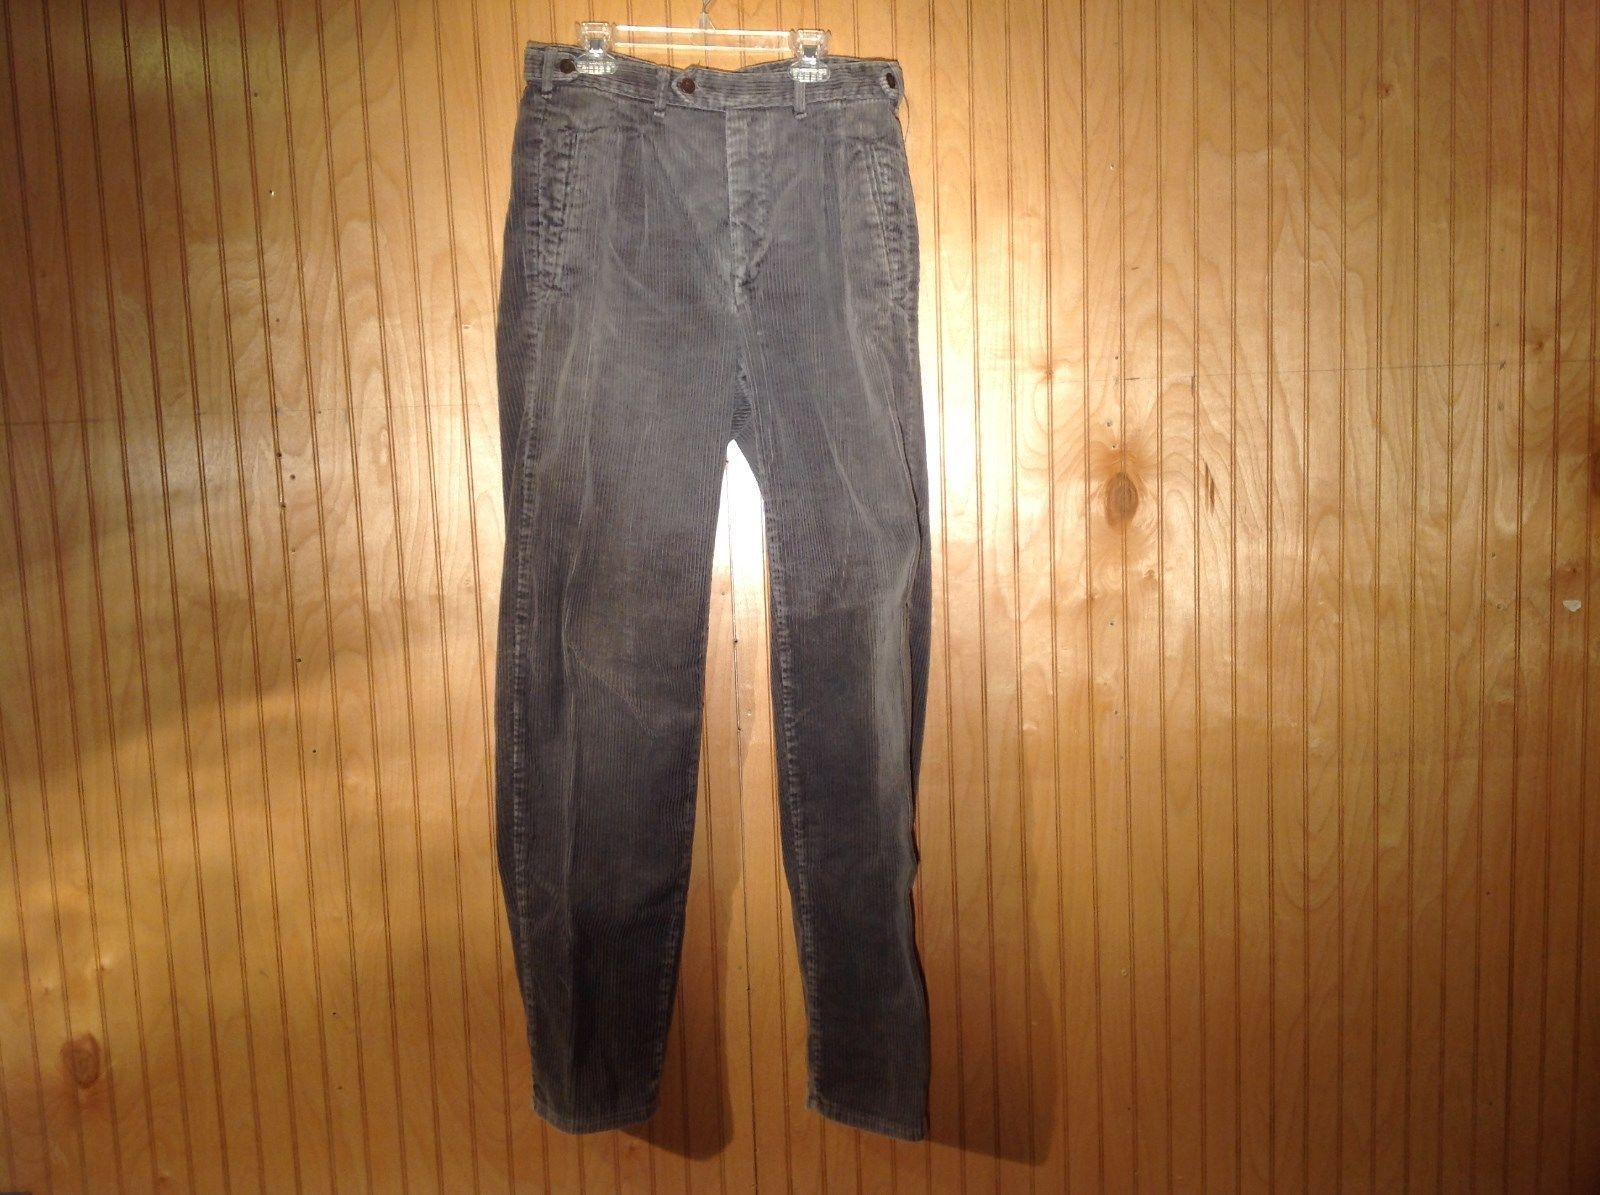 GAP Gray Corduroys Pants No Size Tag Measurements Below Front Back Pockets